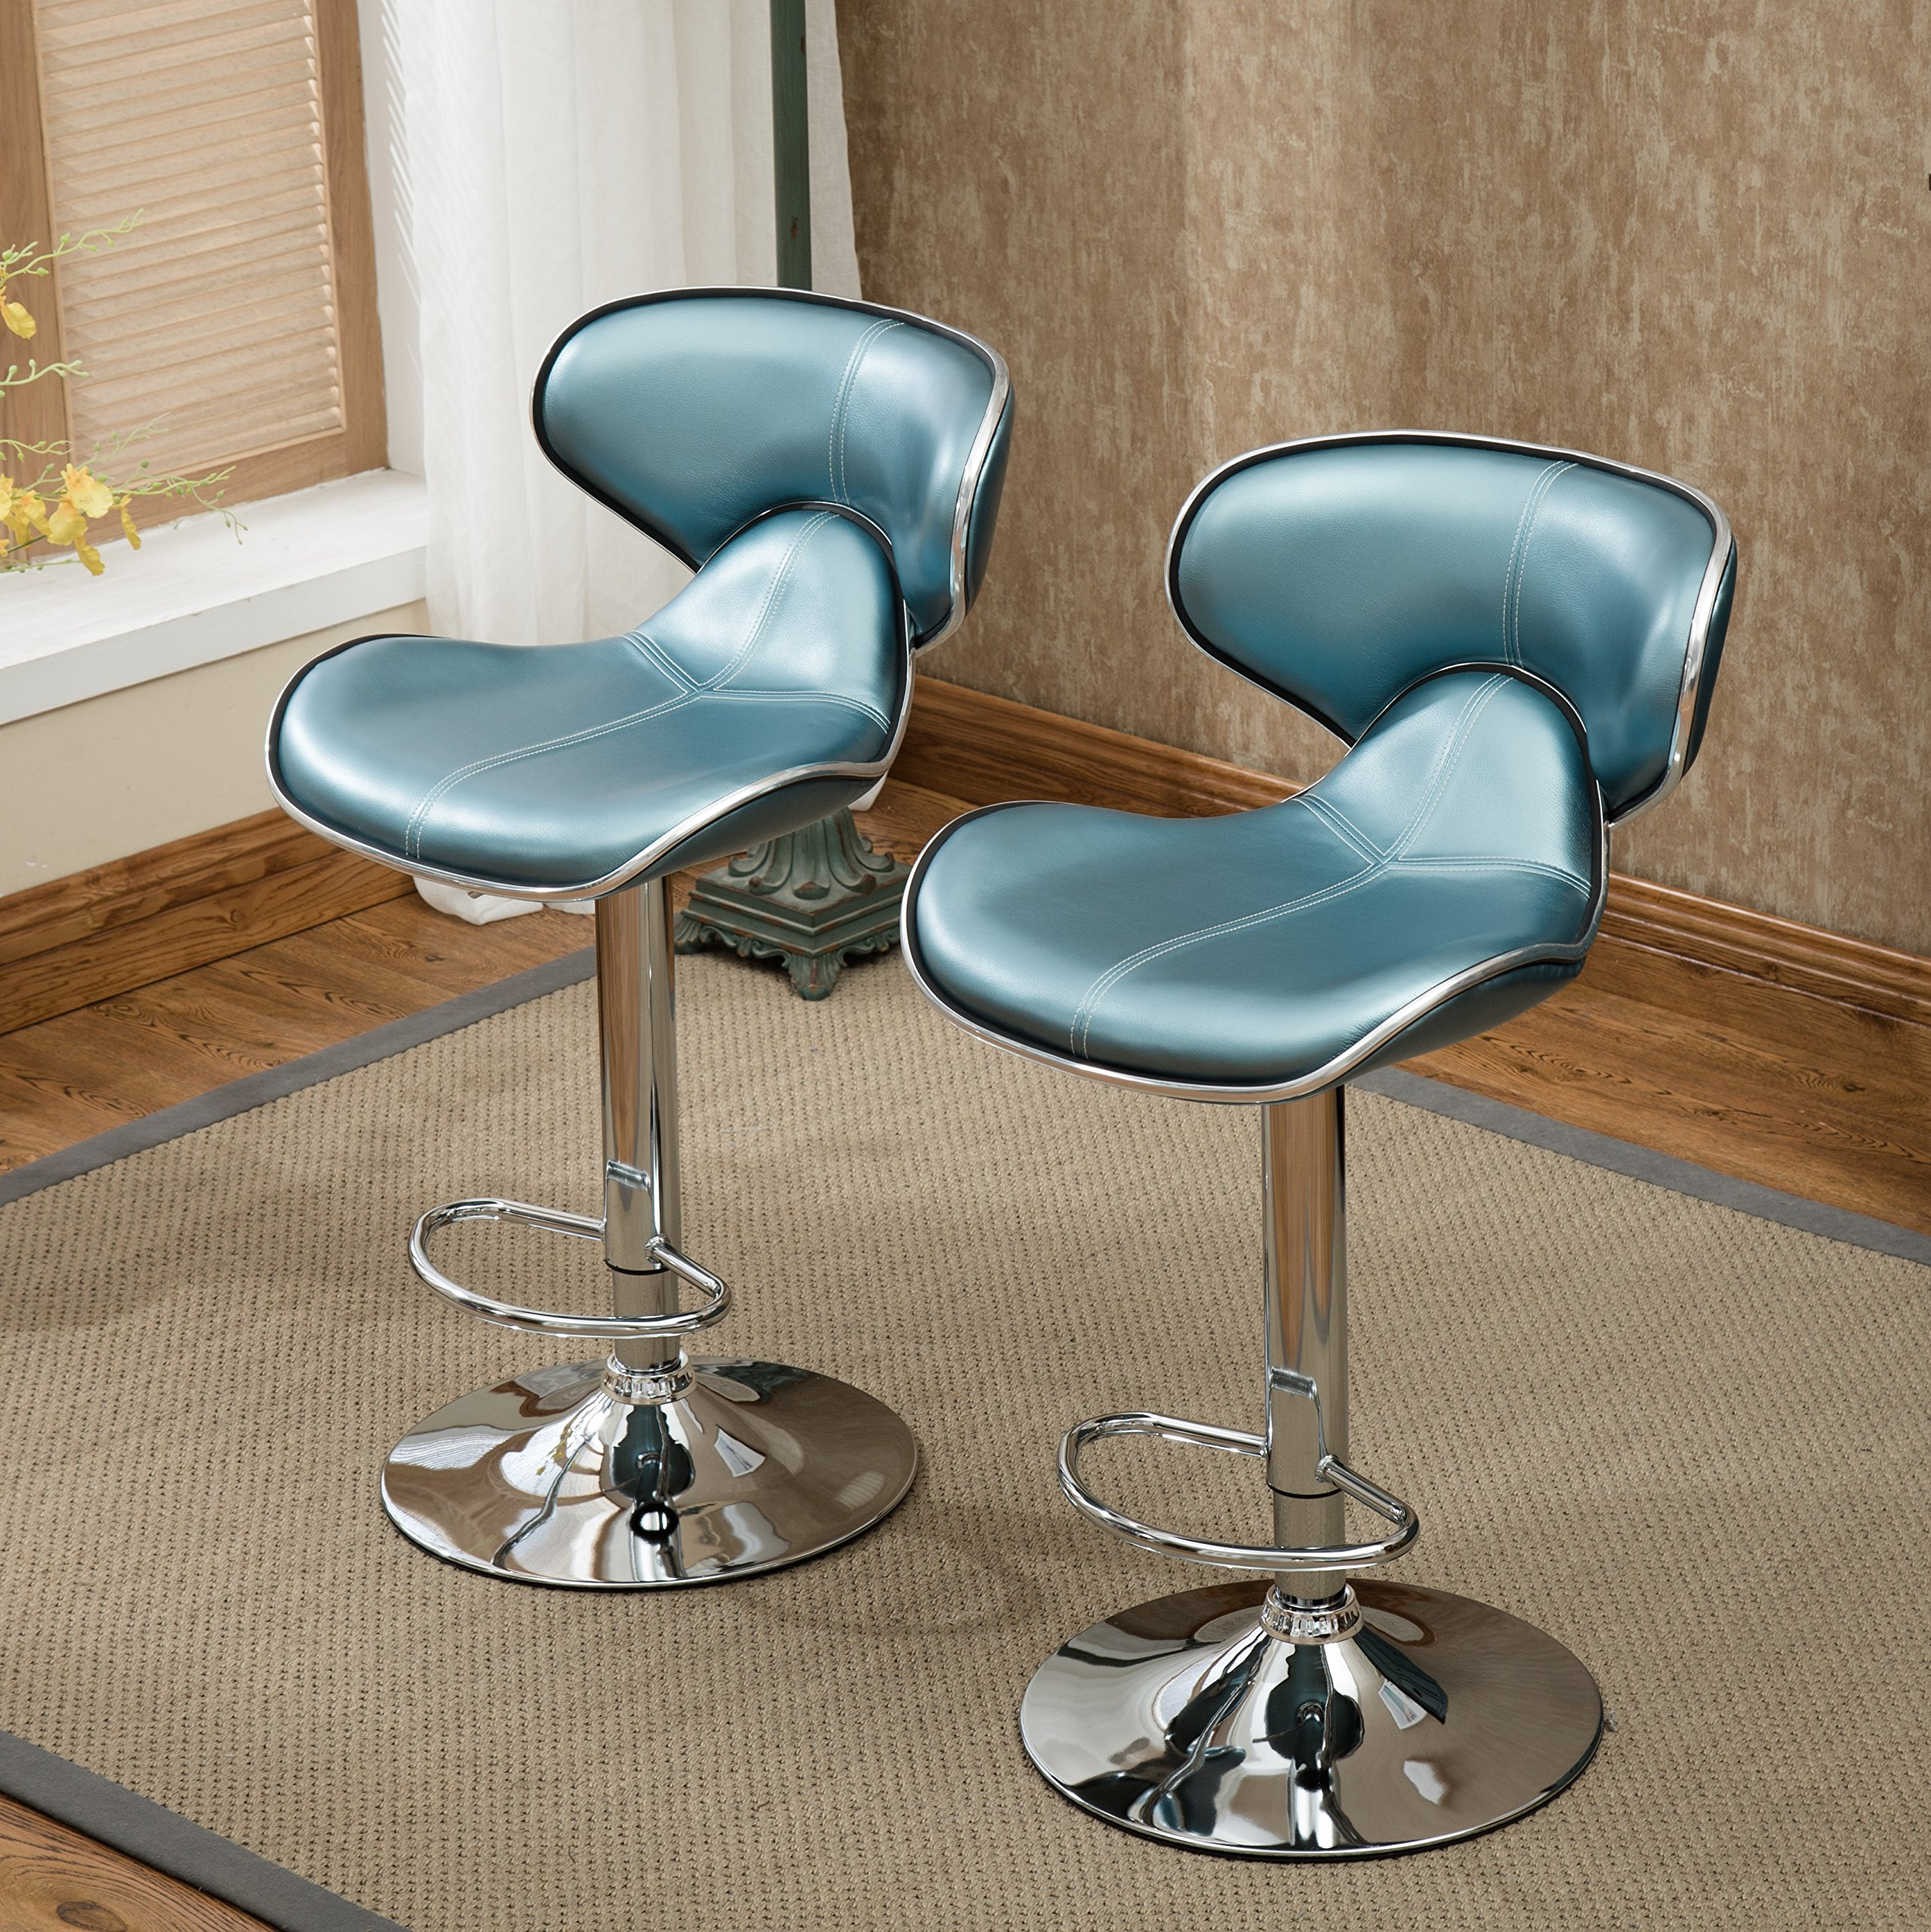 Airlift Adjustable Swivel Barstool with Chrome Base